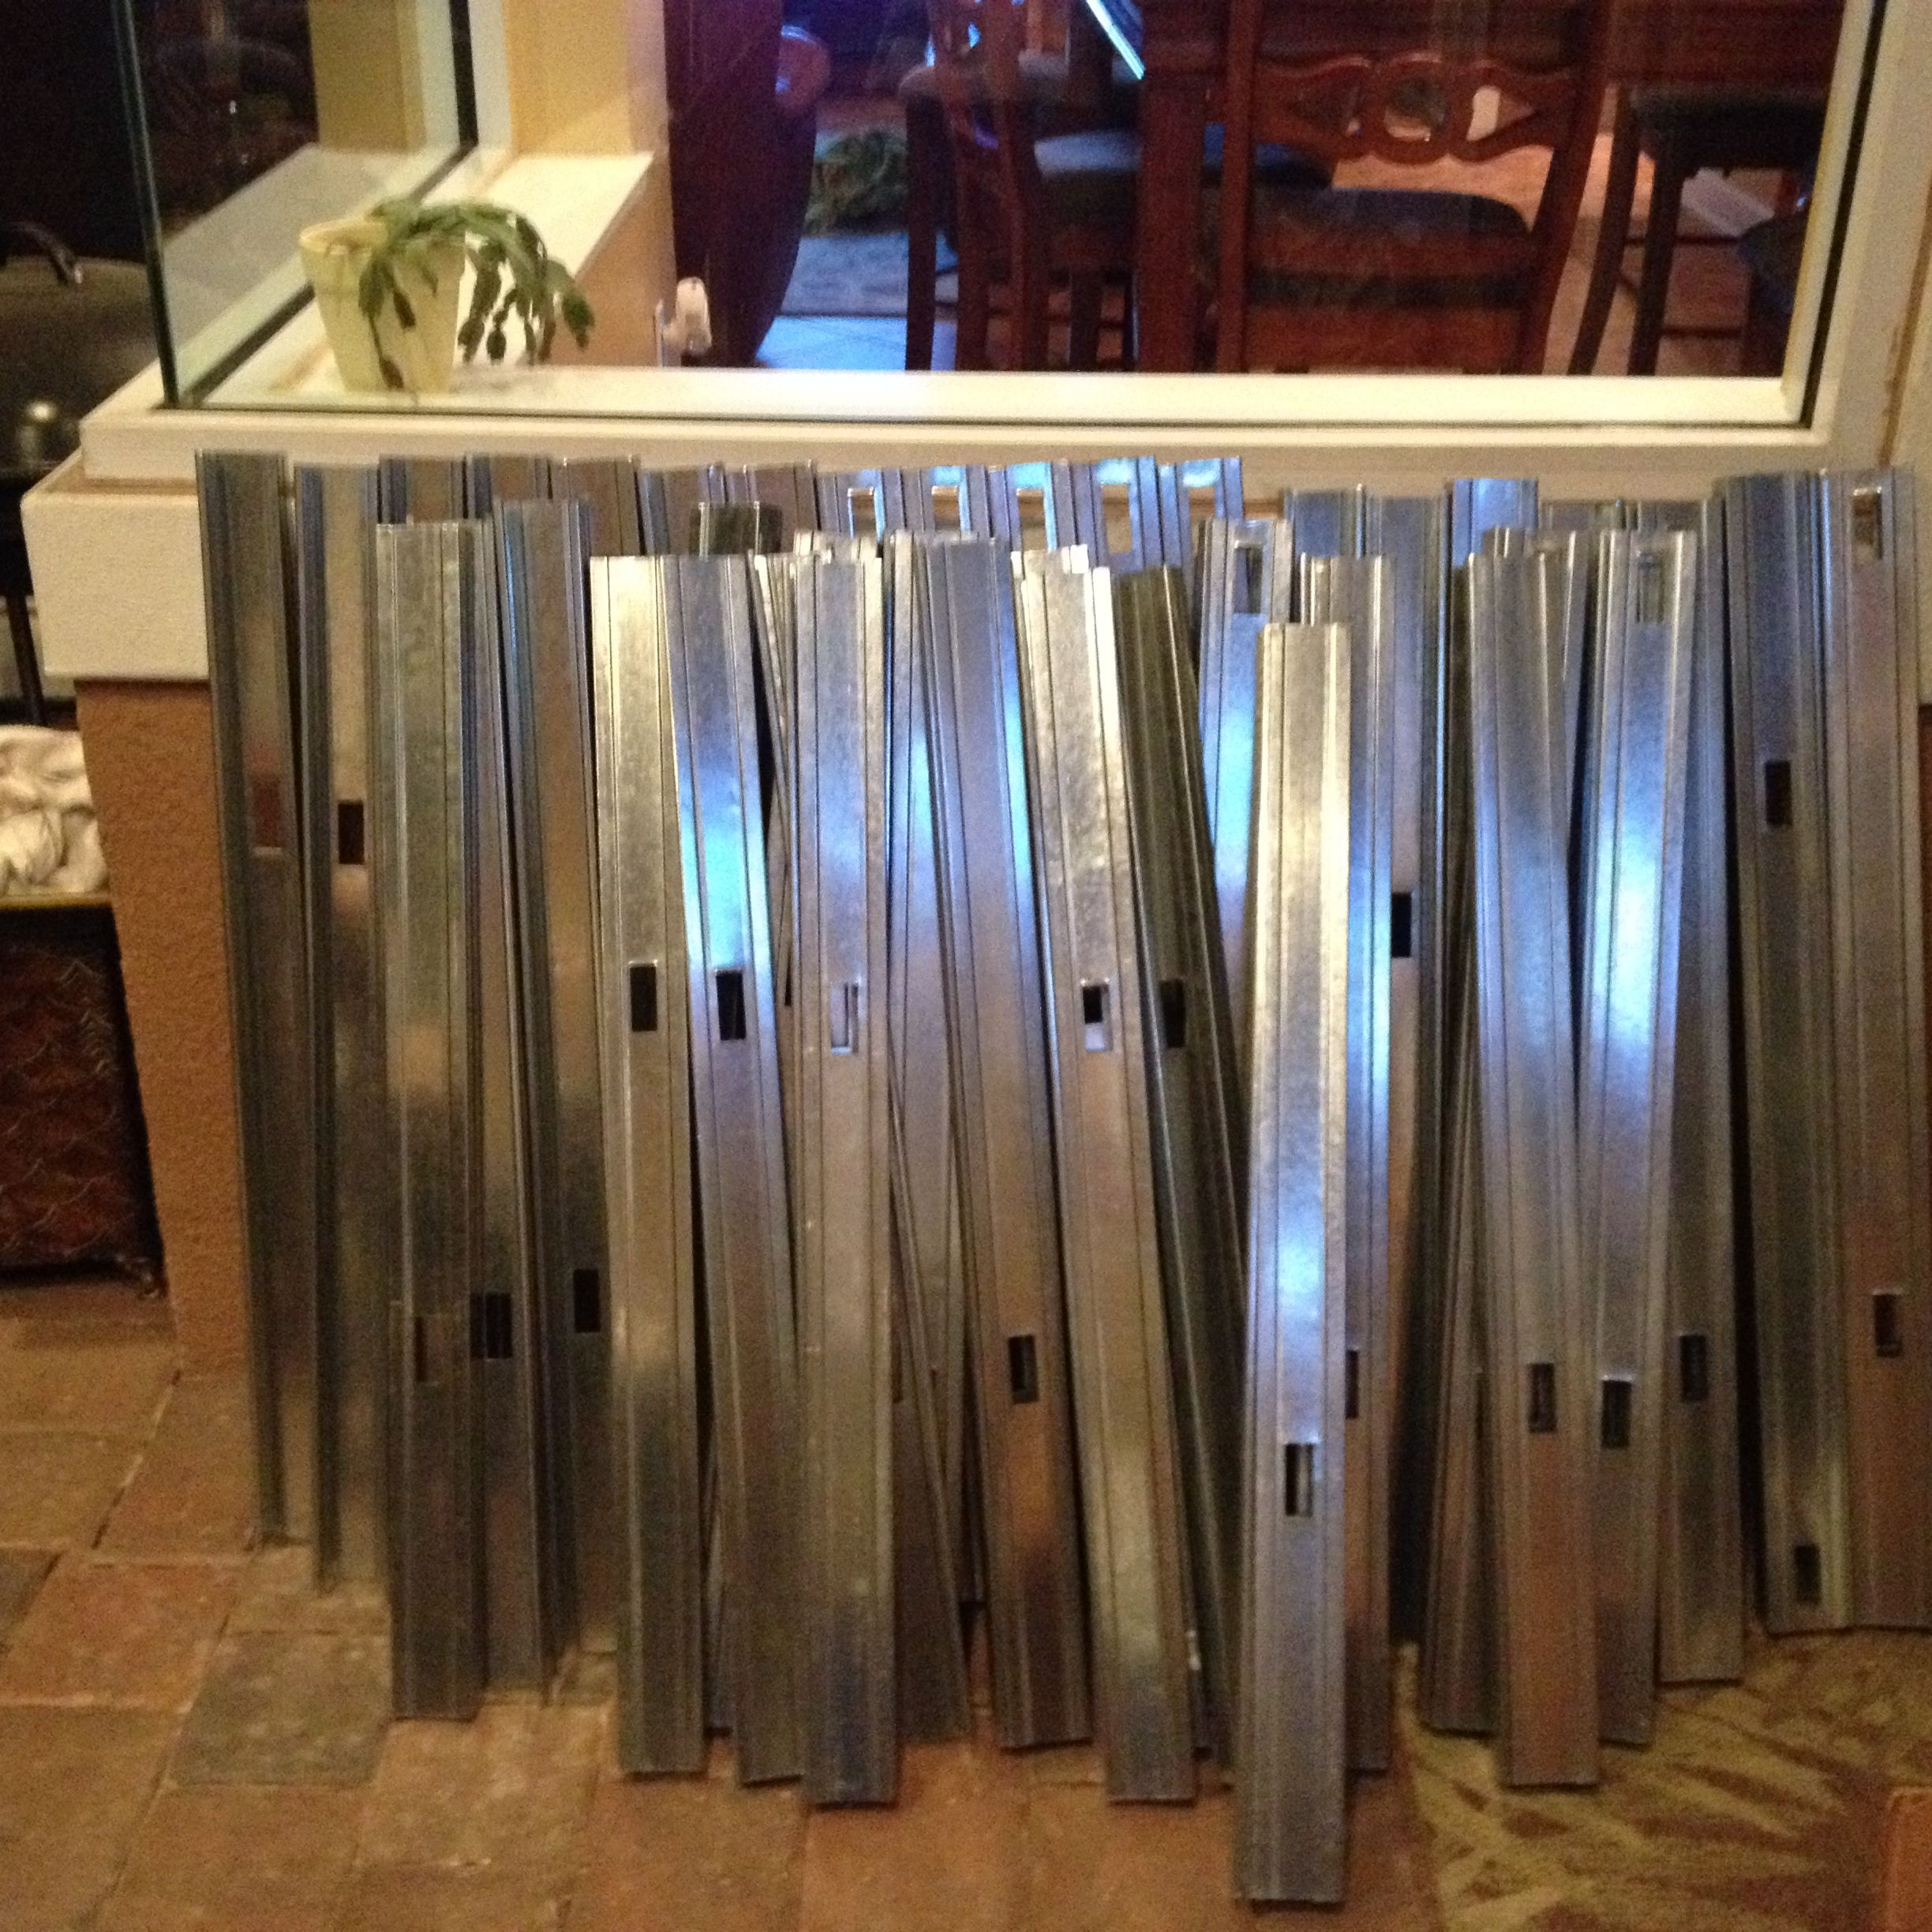 25 Gauge Steel Studs Used To Build 4 Modules For Island Outdoor Bbq Bbq Island Kitchen Projects